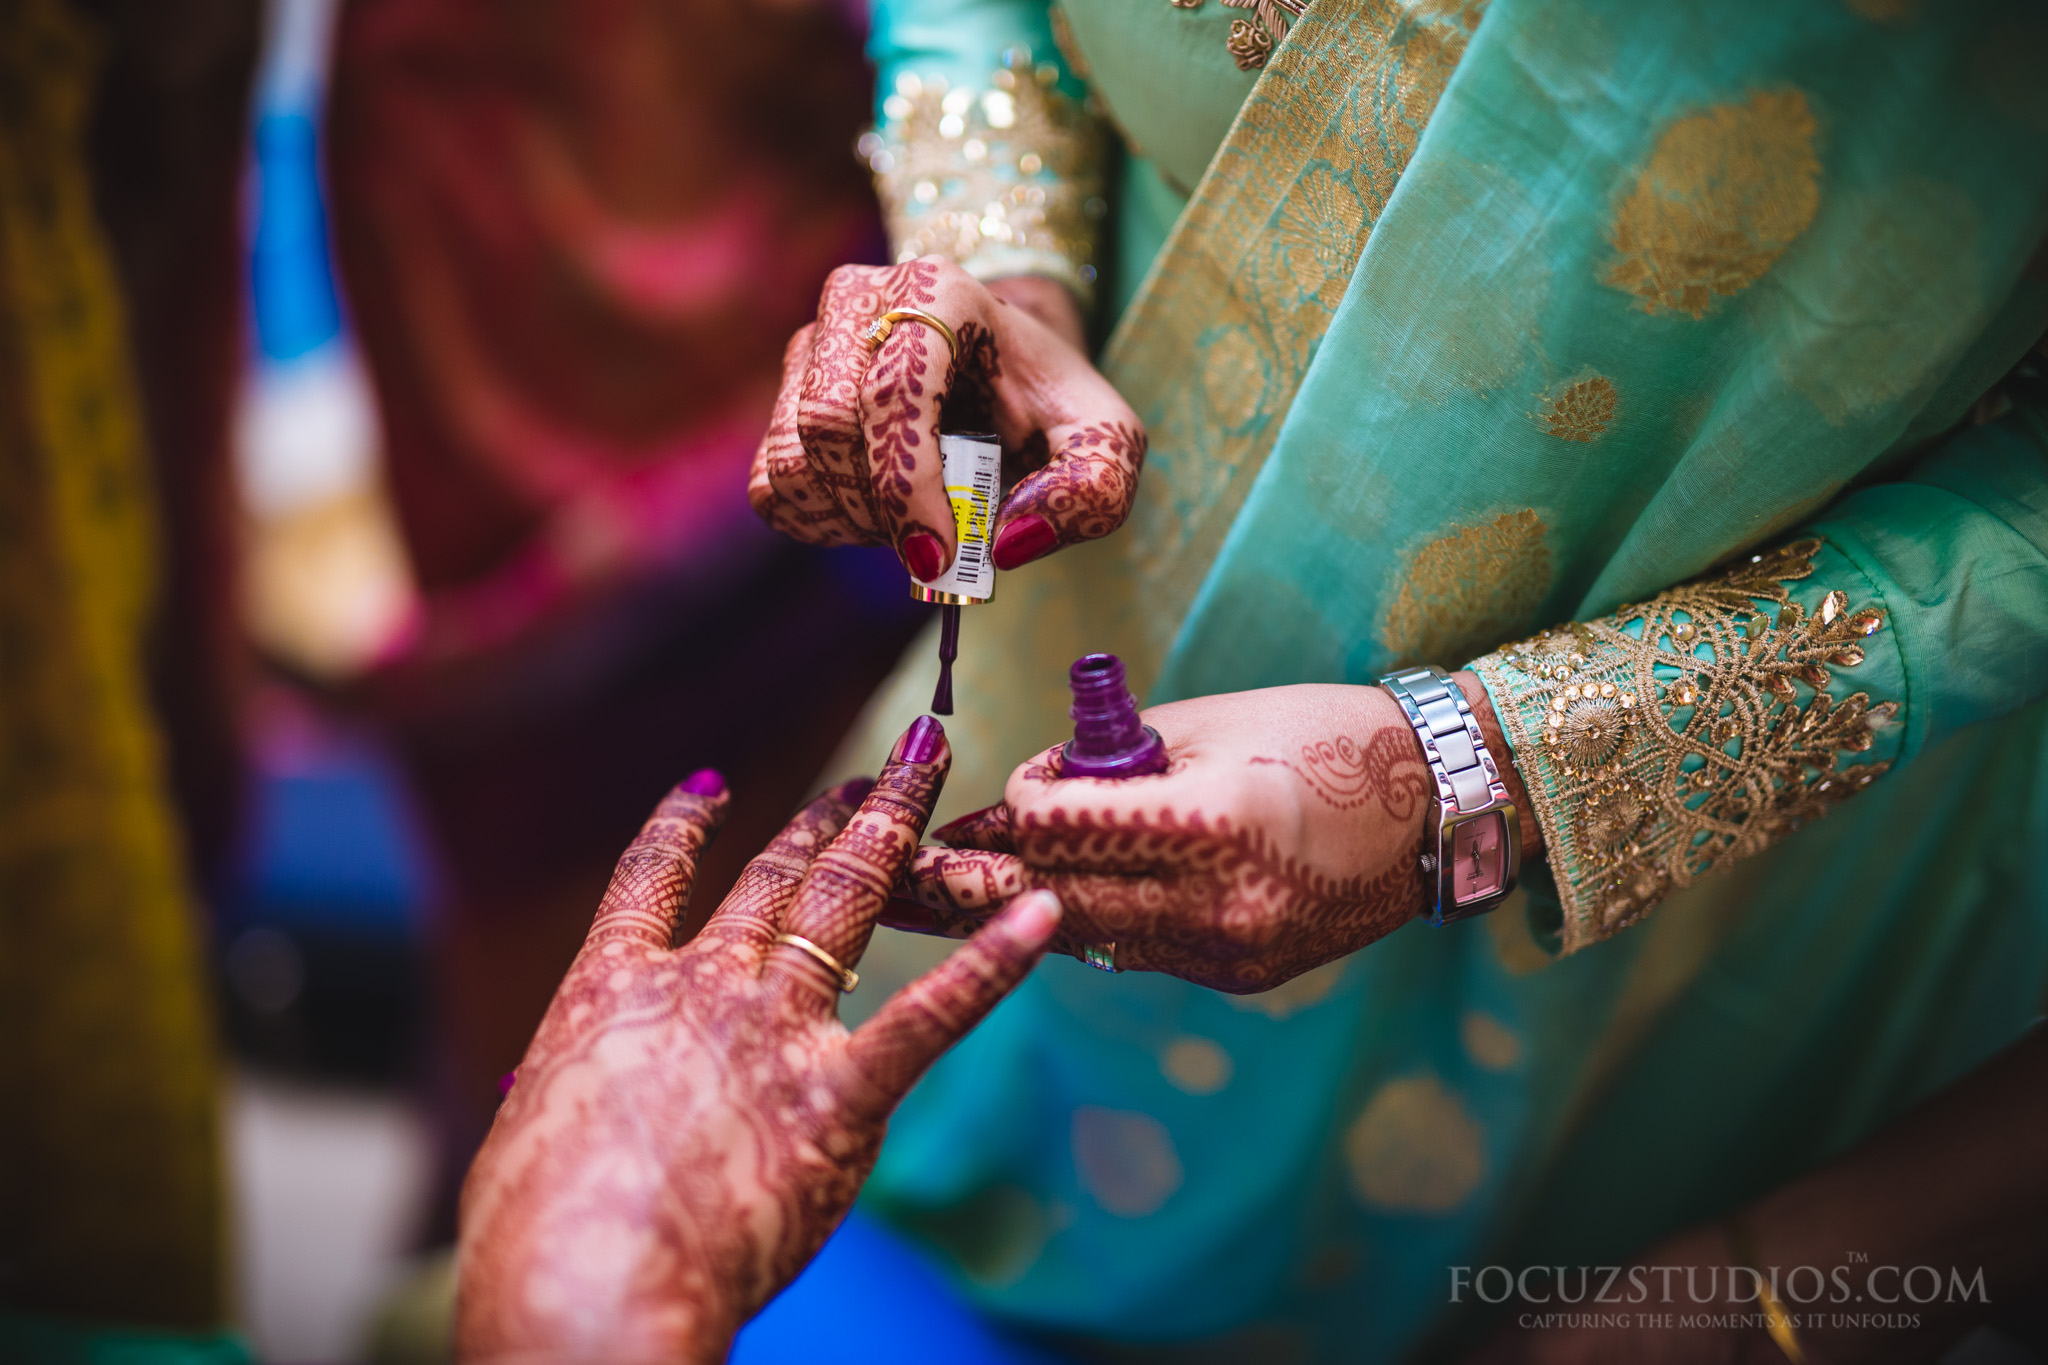 candid-wedding-photography-in-codissia-7